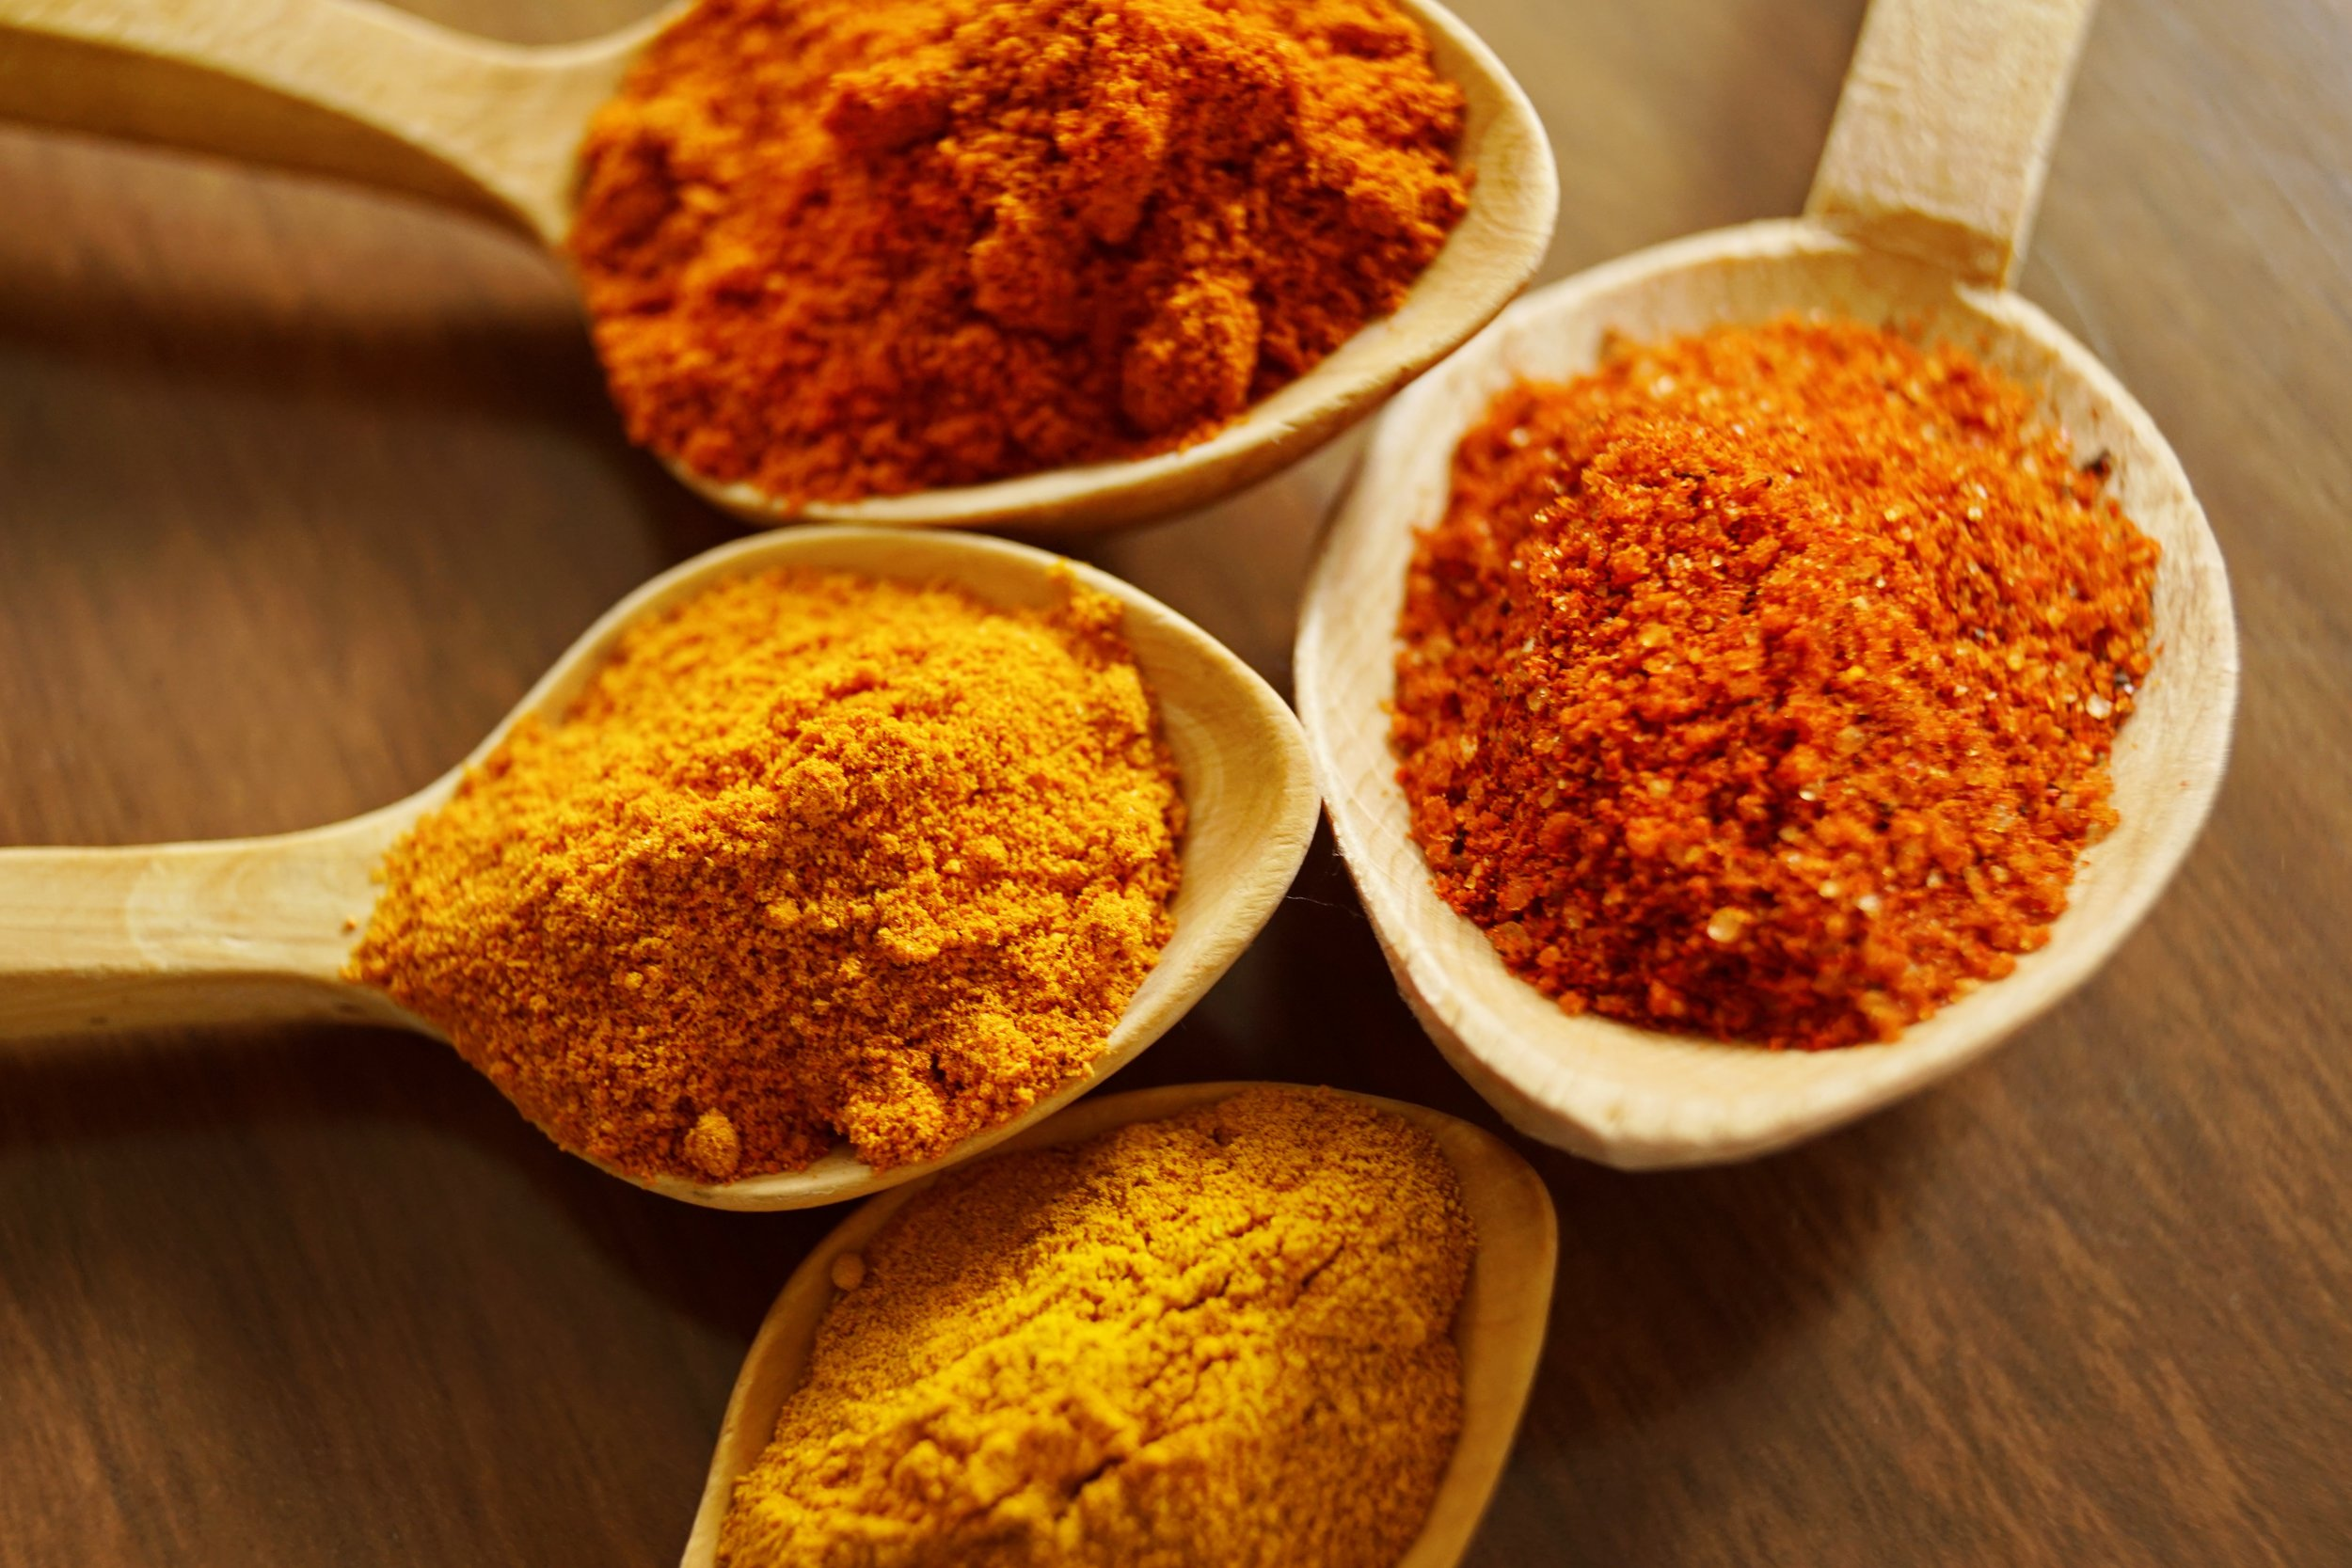 chili-chilli-powder-cinnamon-1340116.jpg